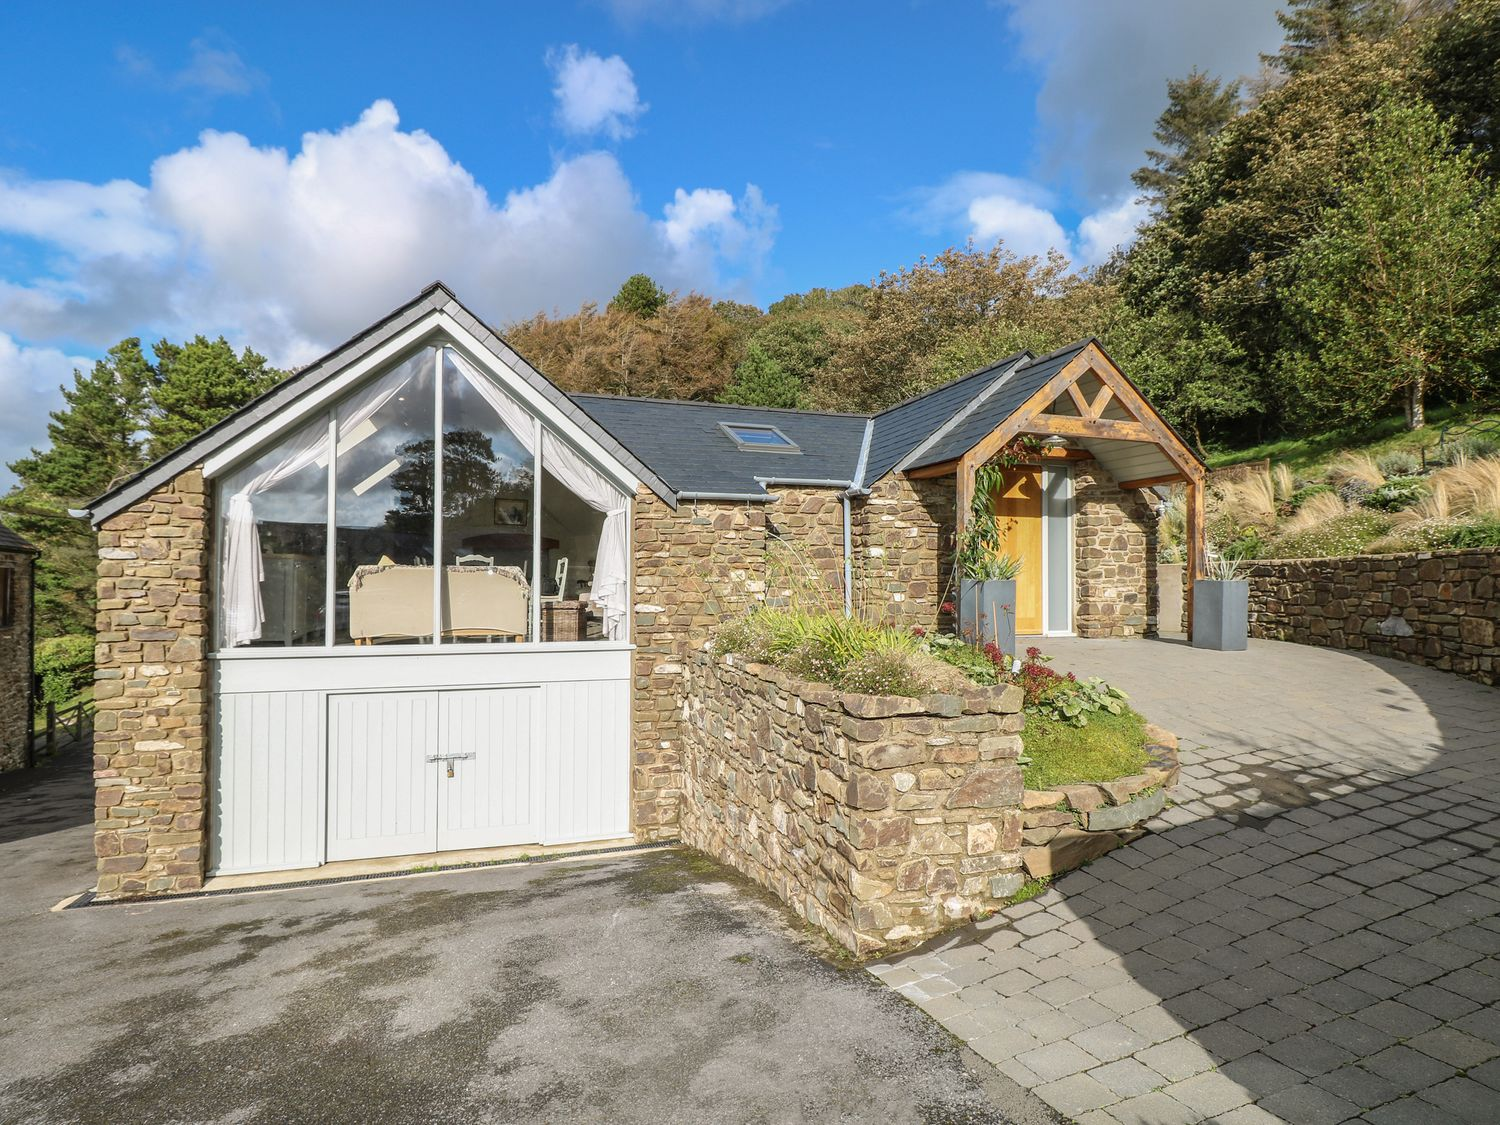 Leeward Cottage - South Wales - 943268 - photo 1